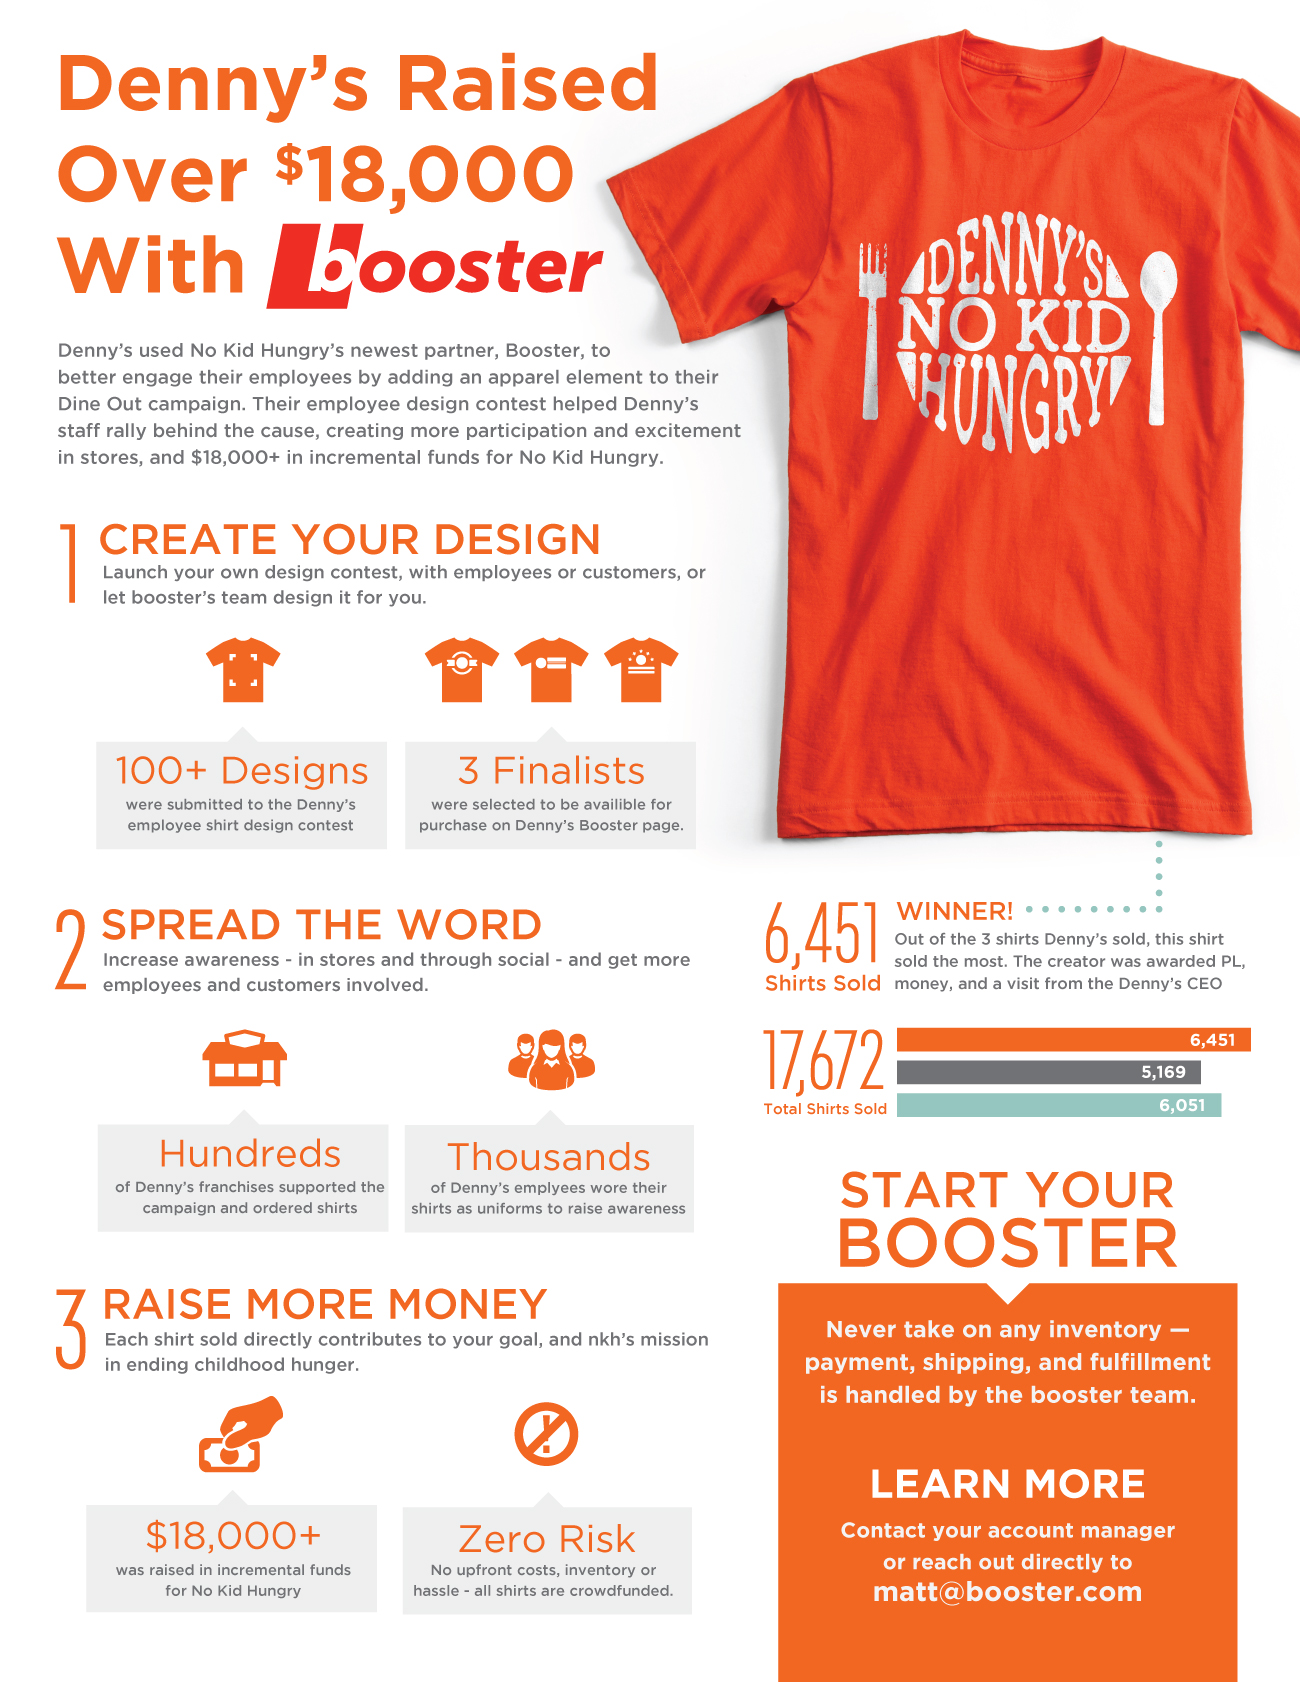 denny's booster tees